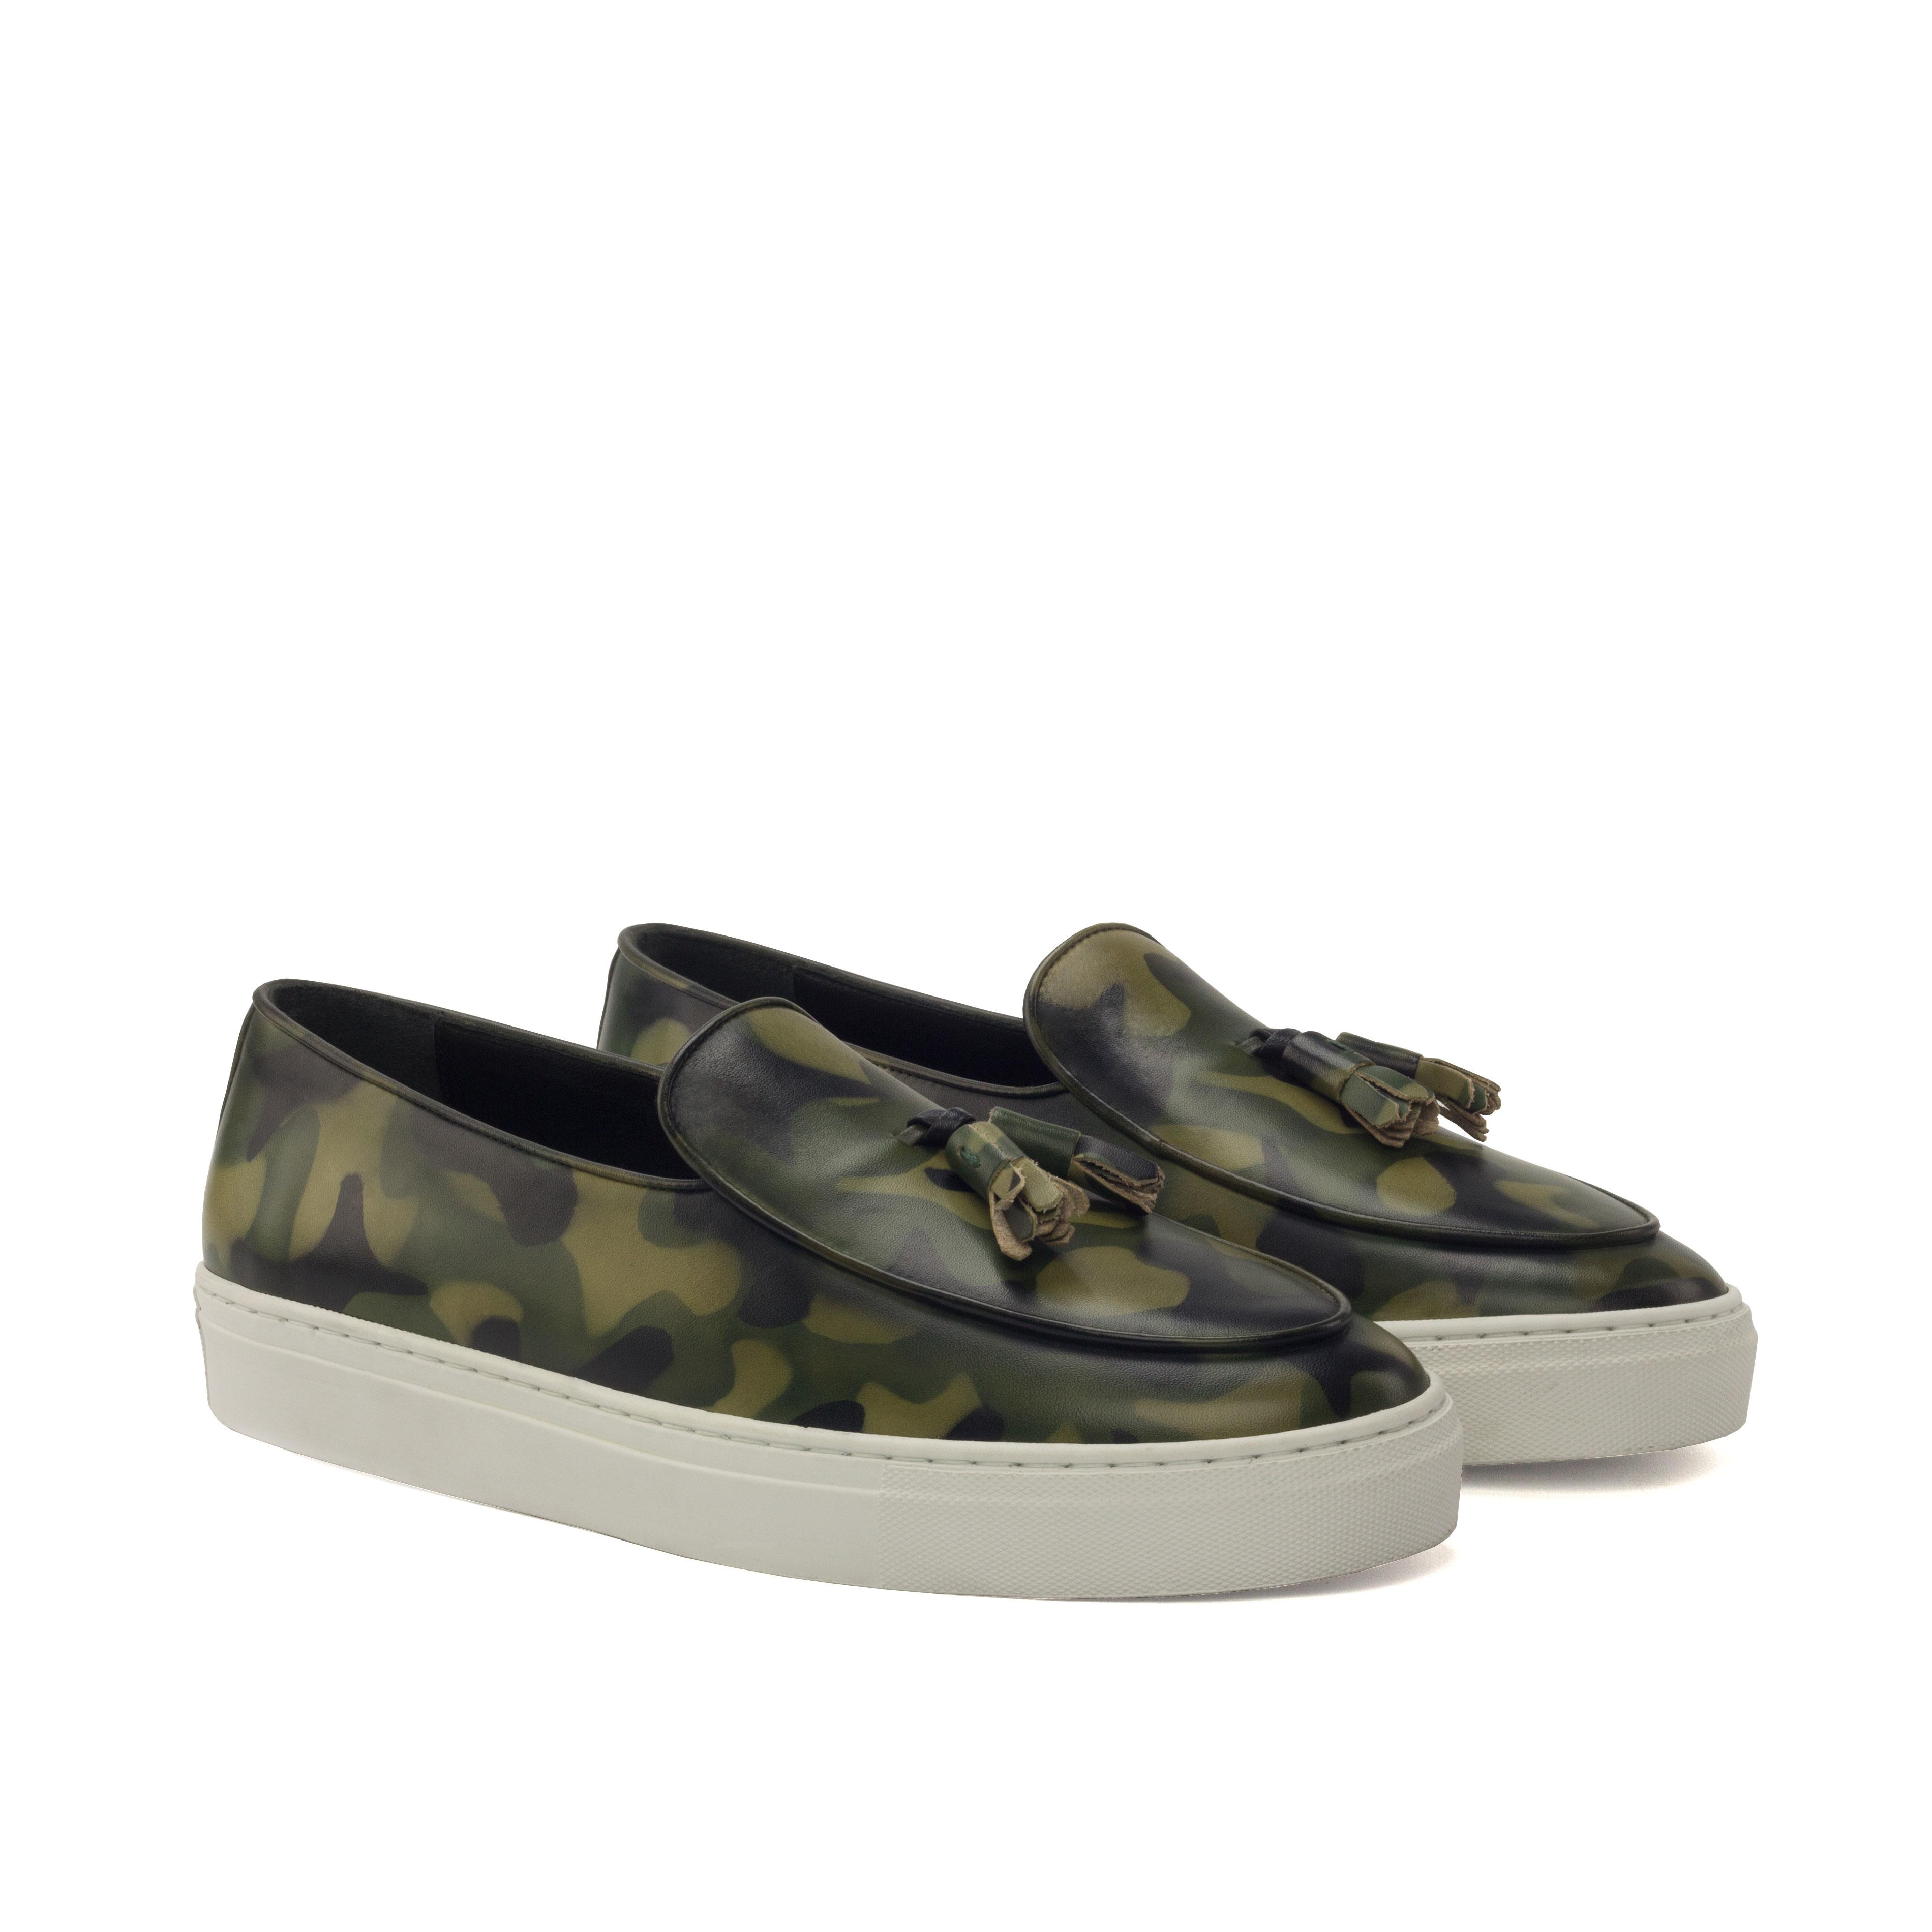 Manor of London 'The Dandy' Khaki Camo Patina Belgian Trainer Luxury Custom Initials Monogrammed Front Side View